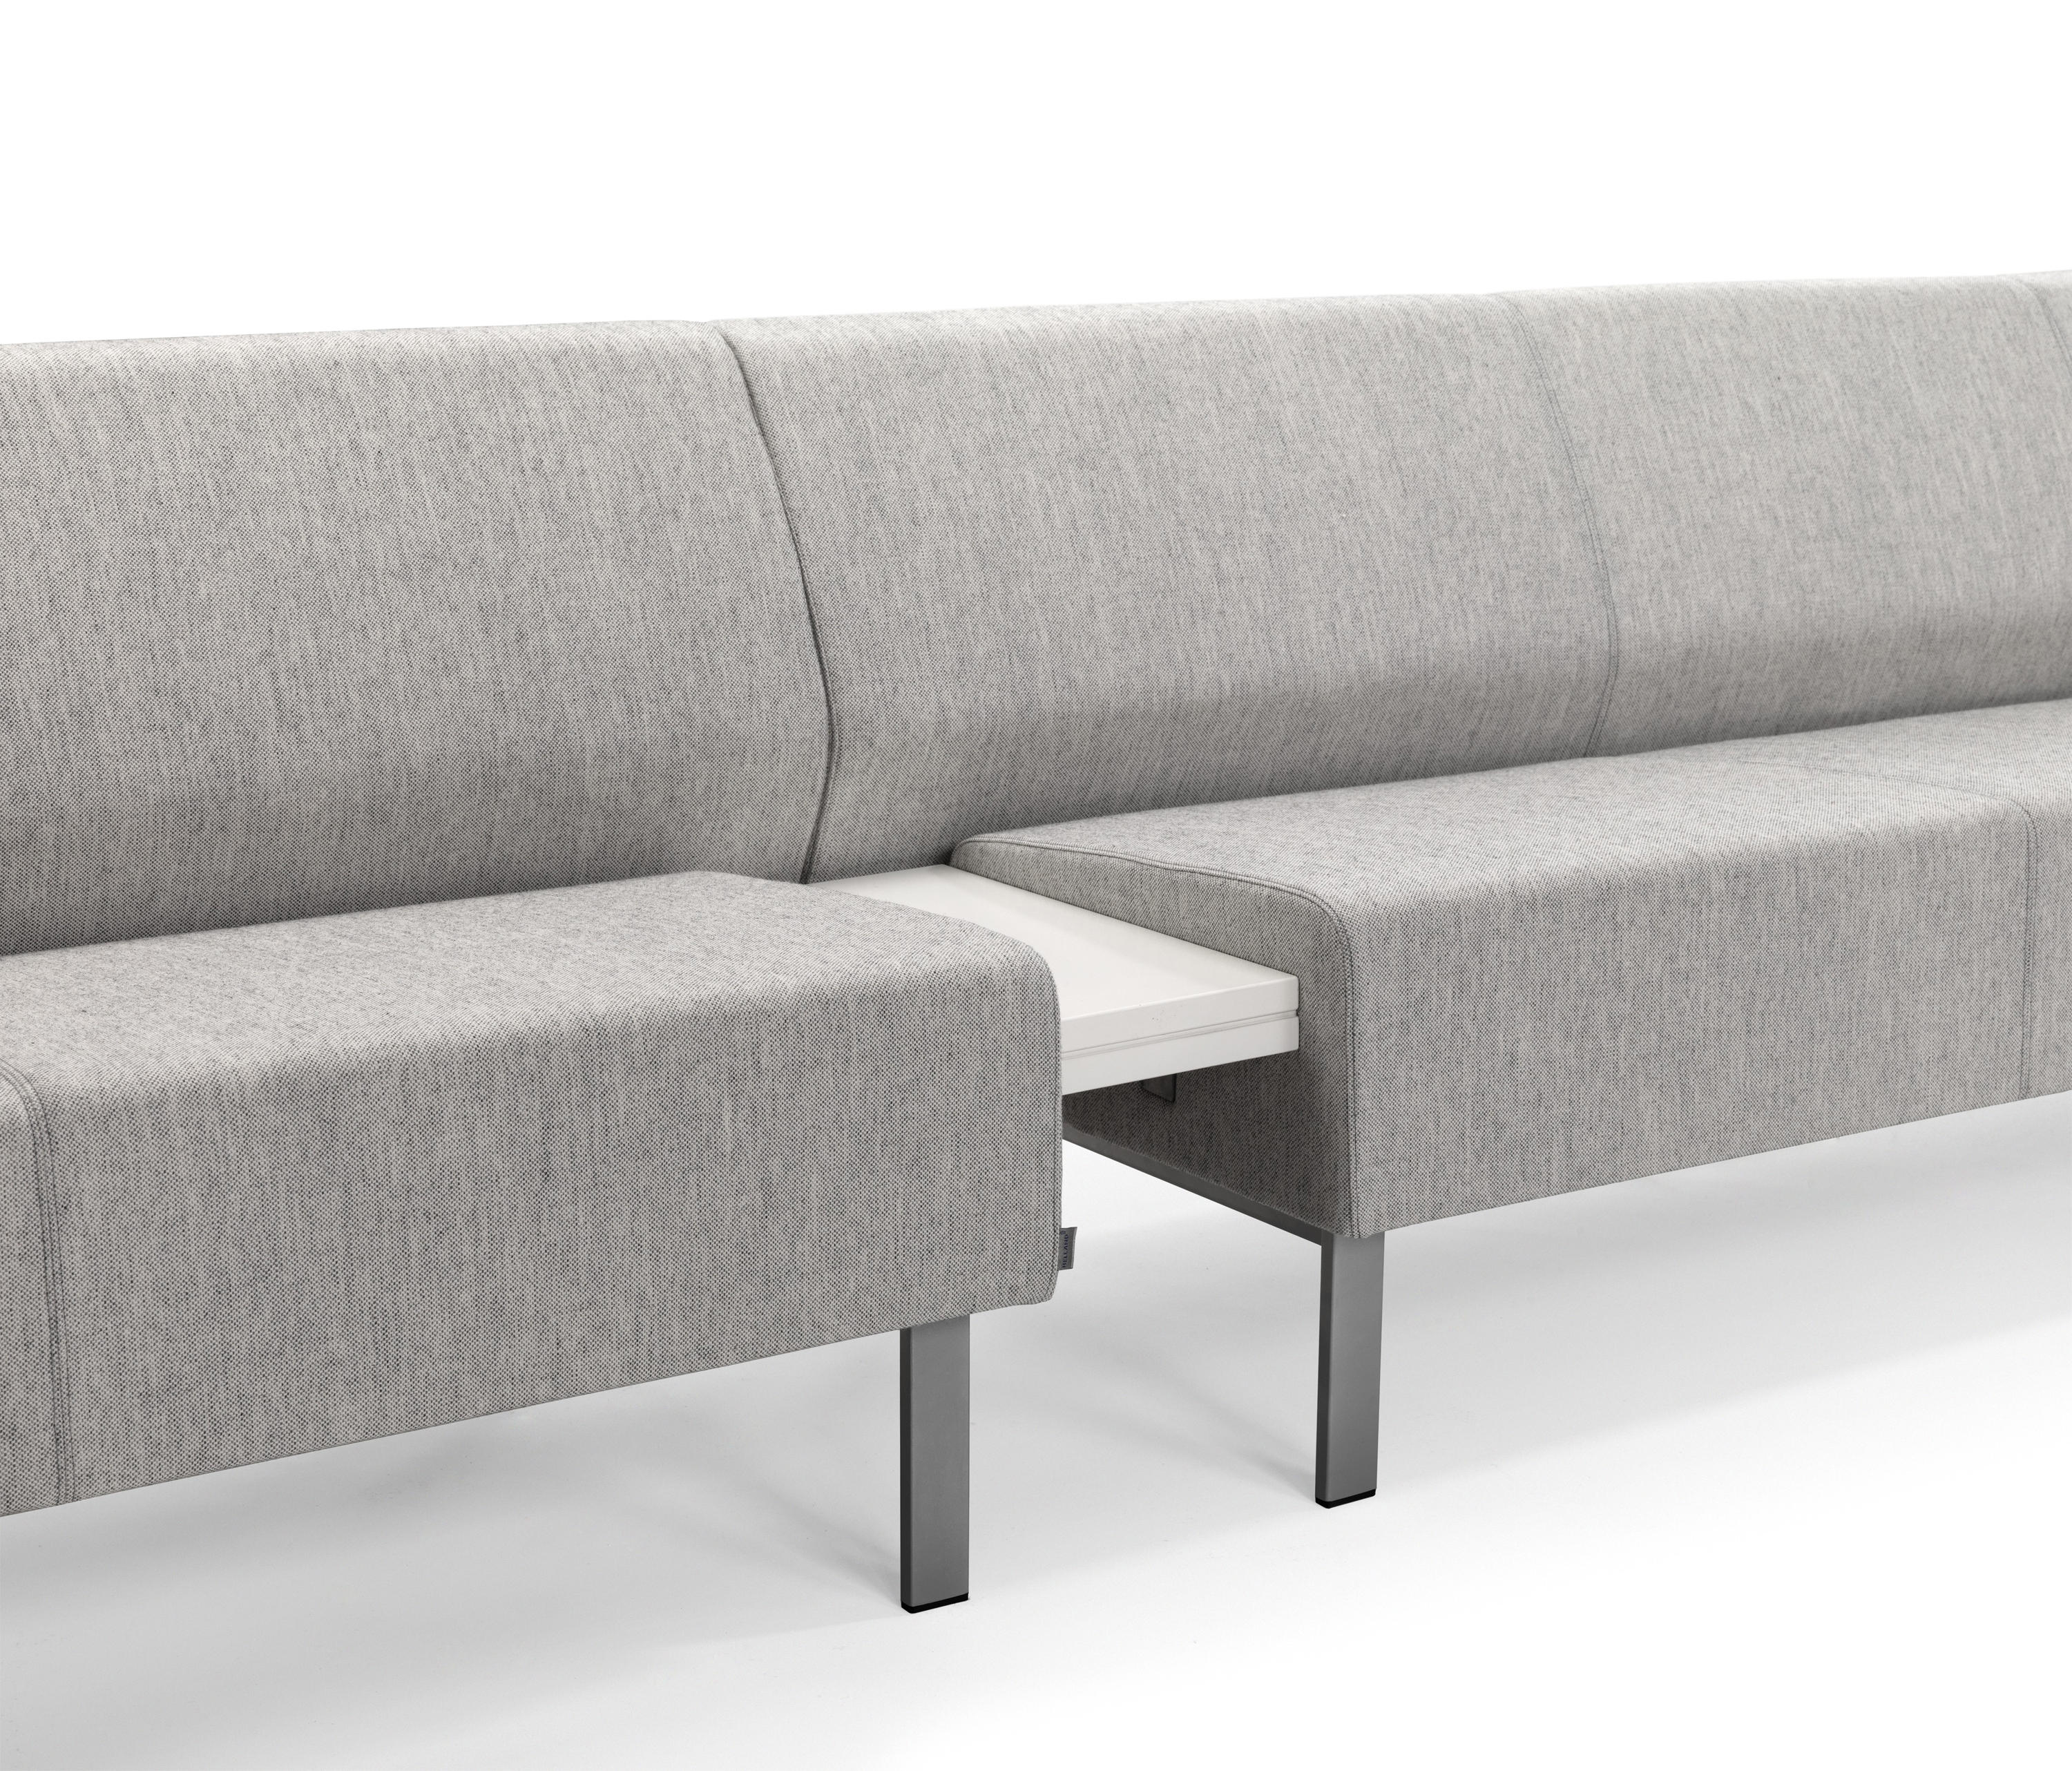 LINK SOFA - Elderly Care Sofas From Helland